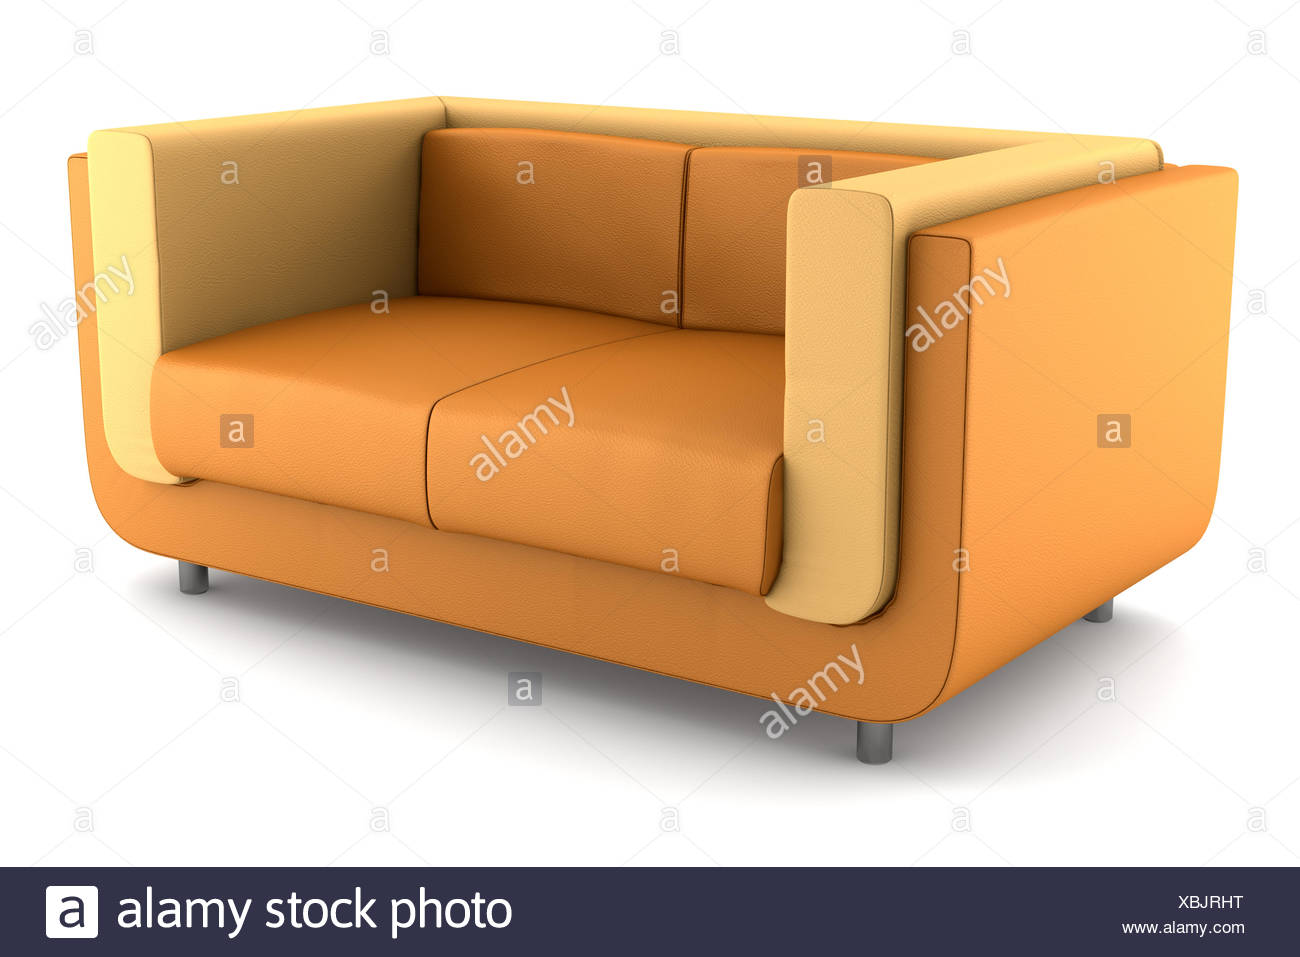 Phenomenal Modern Orange Leather Couch Isolated On White Stock Photo Machost Co Dining Chair Design Ideas Machostcouk